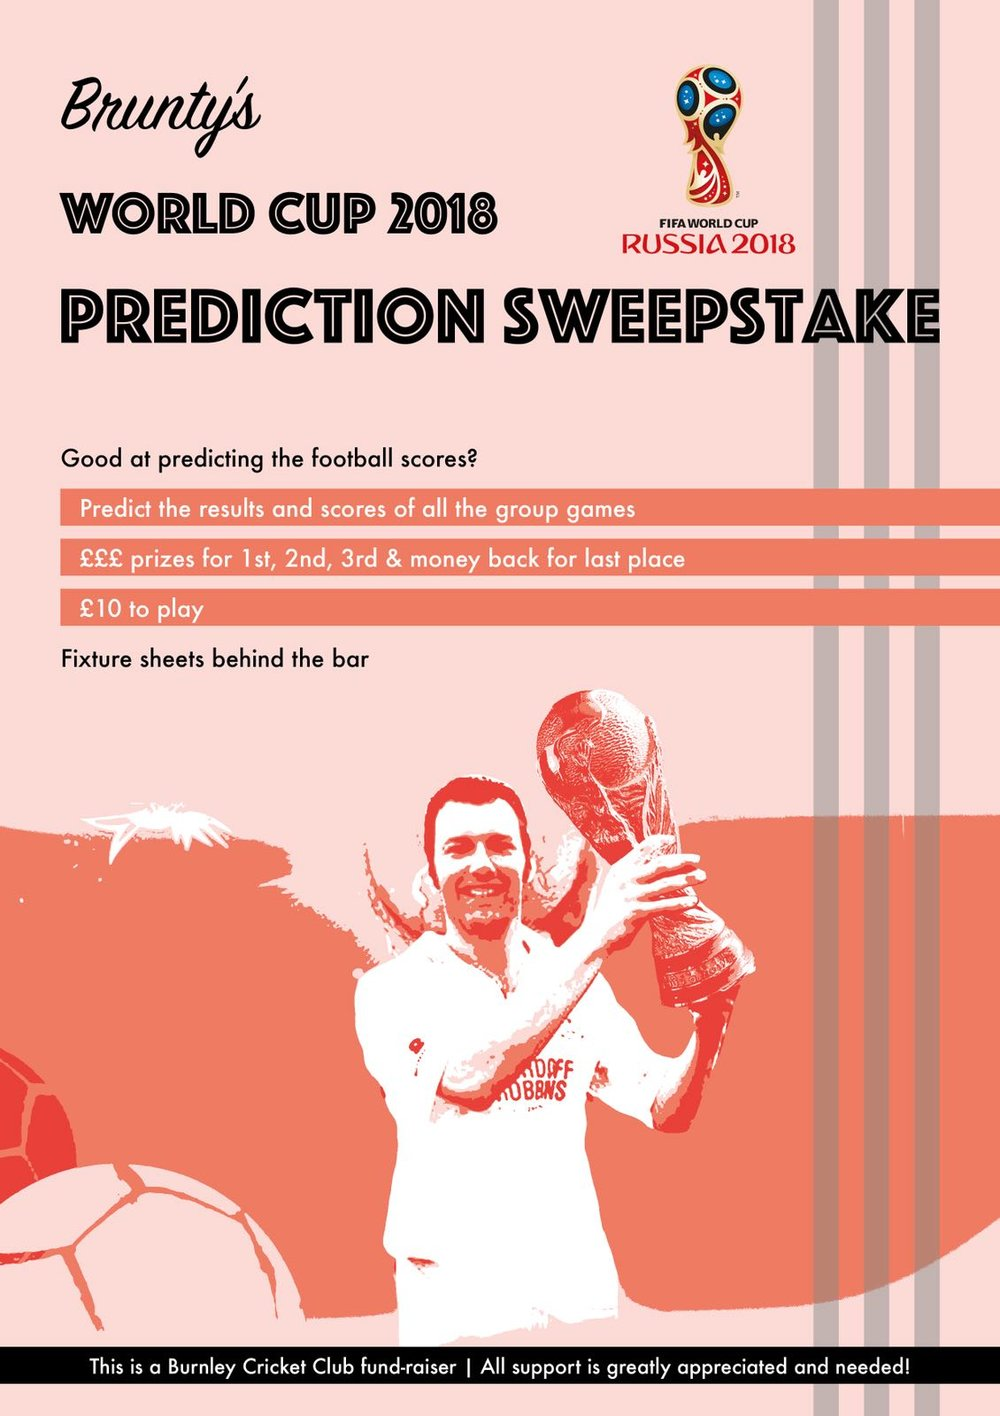 burnley cricket club world cup prediction sweepstake